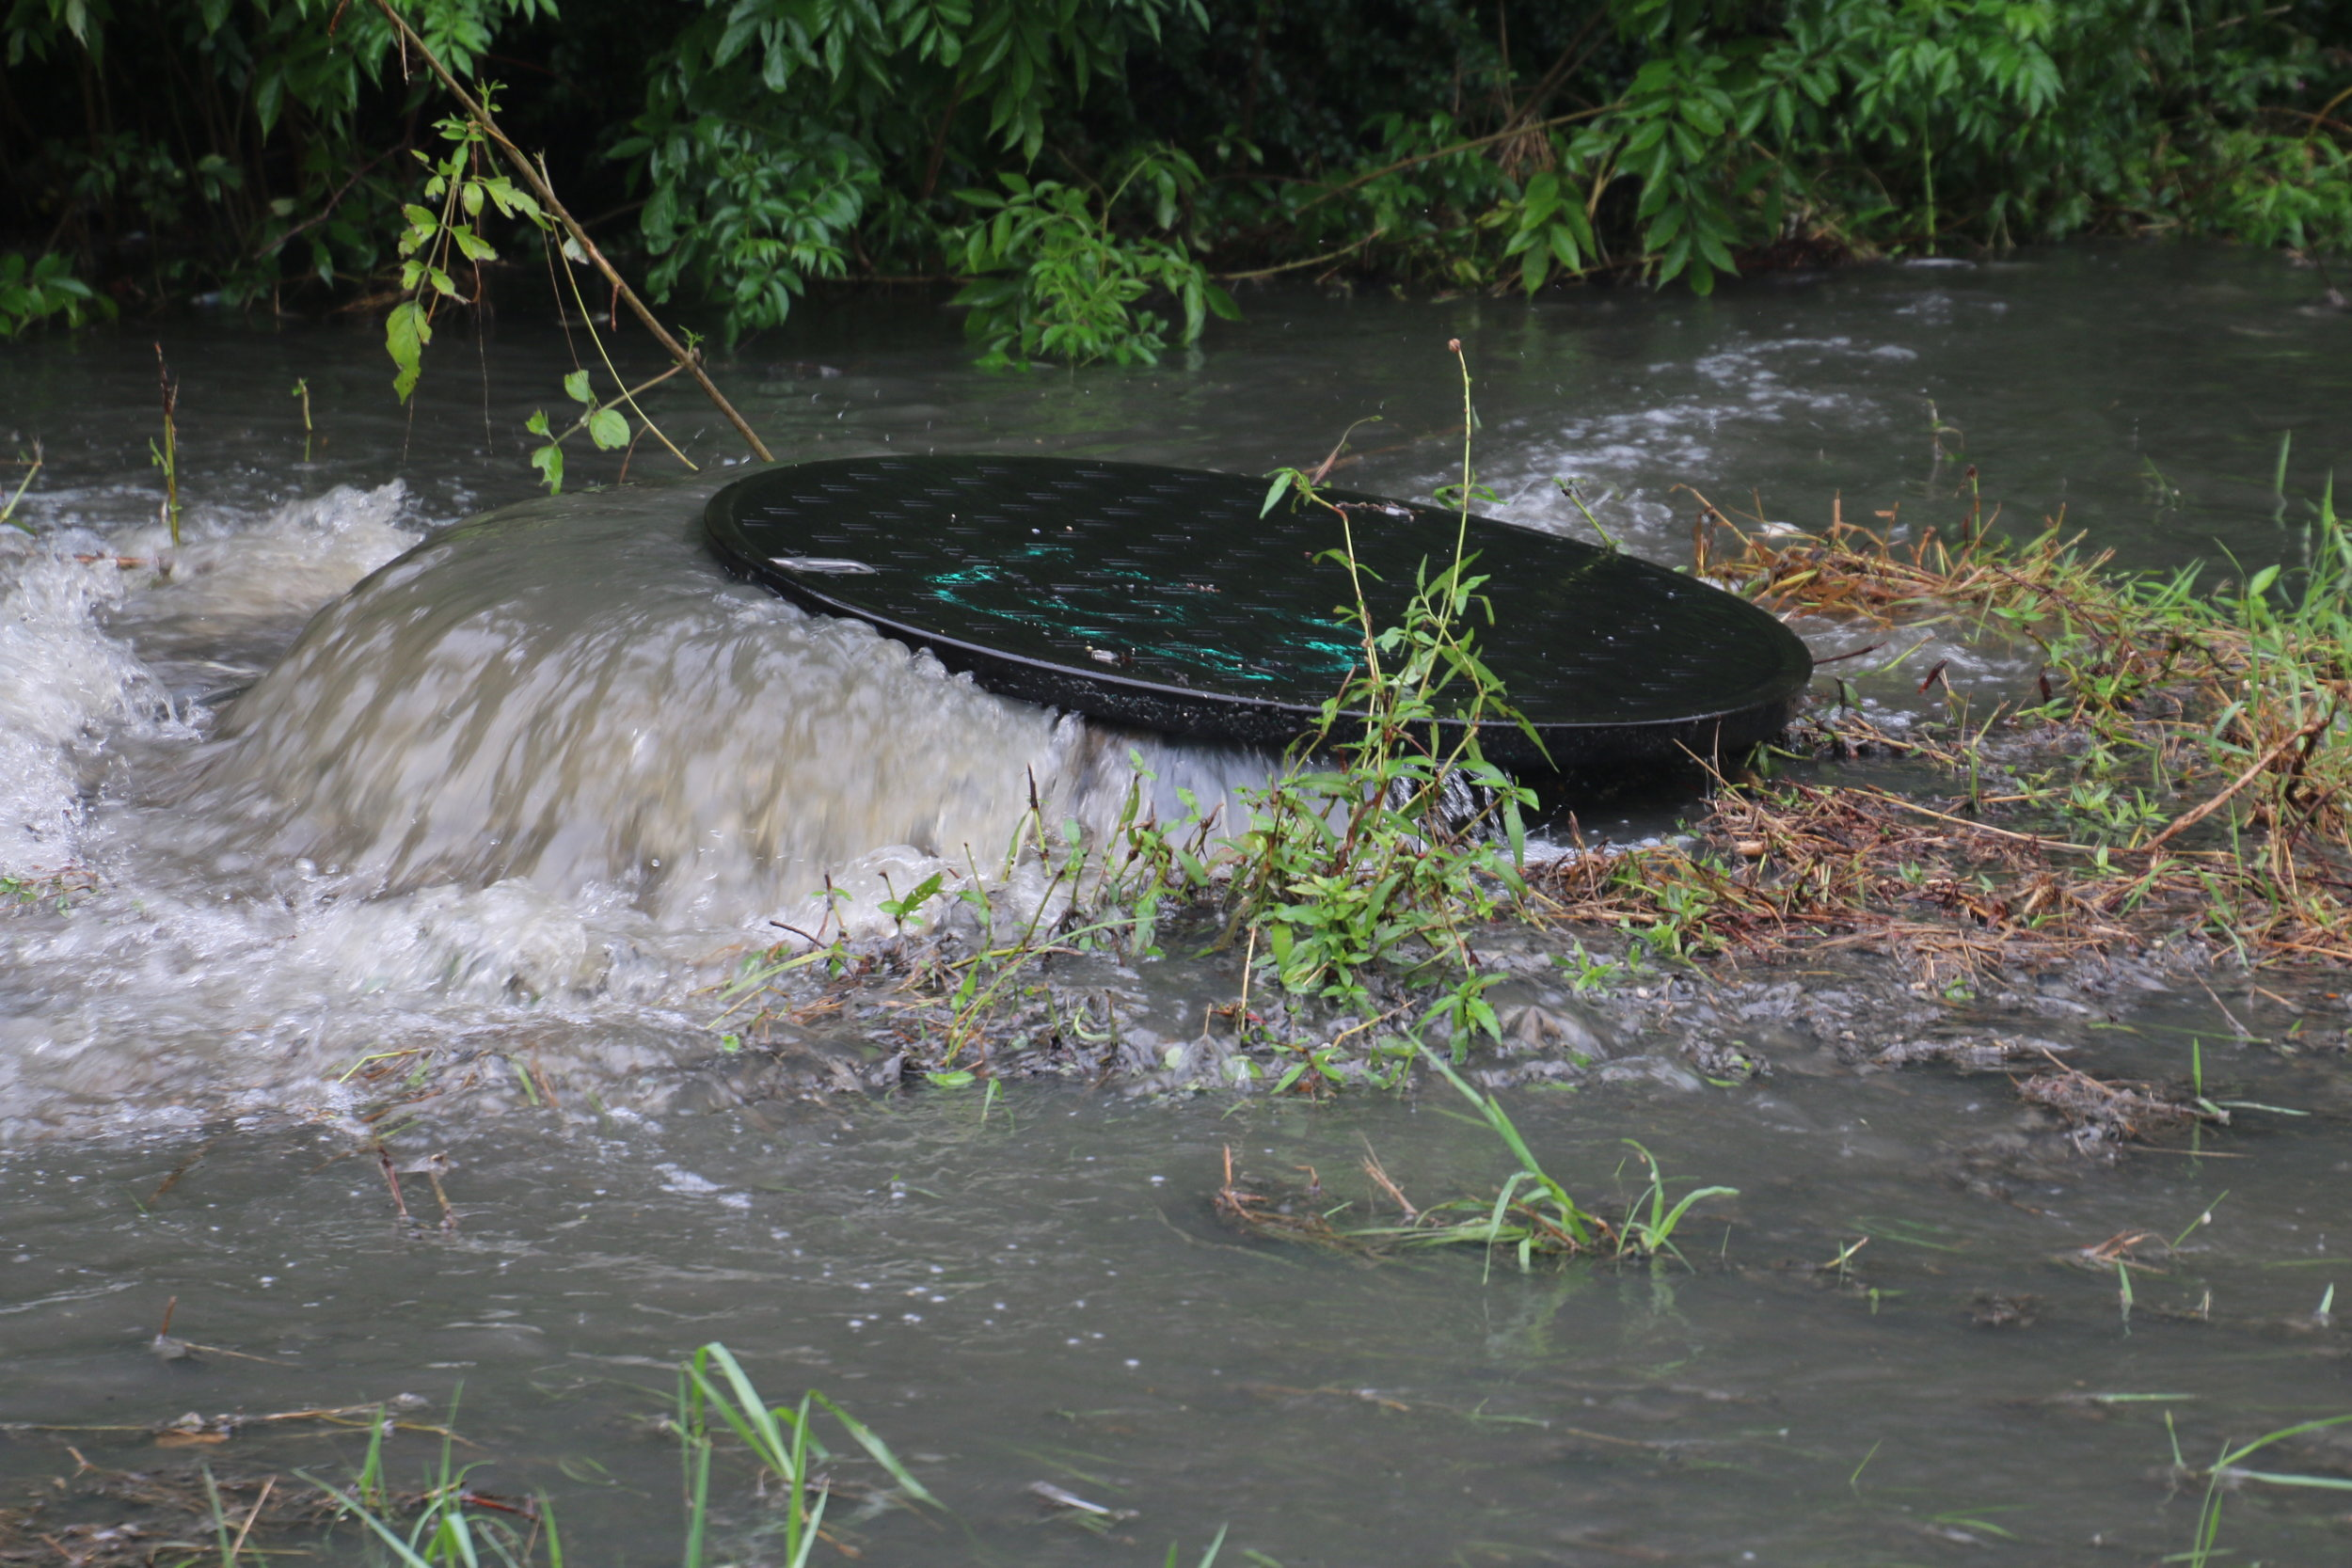 Raw sewage flows from a manhole in Mobile during heavy rains.